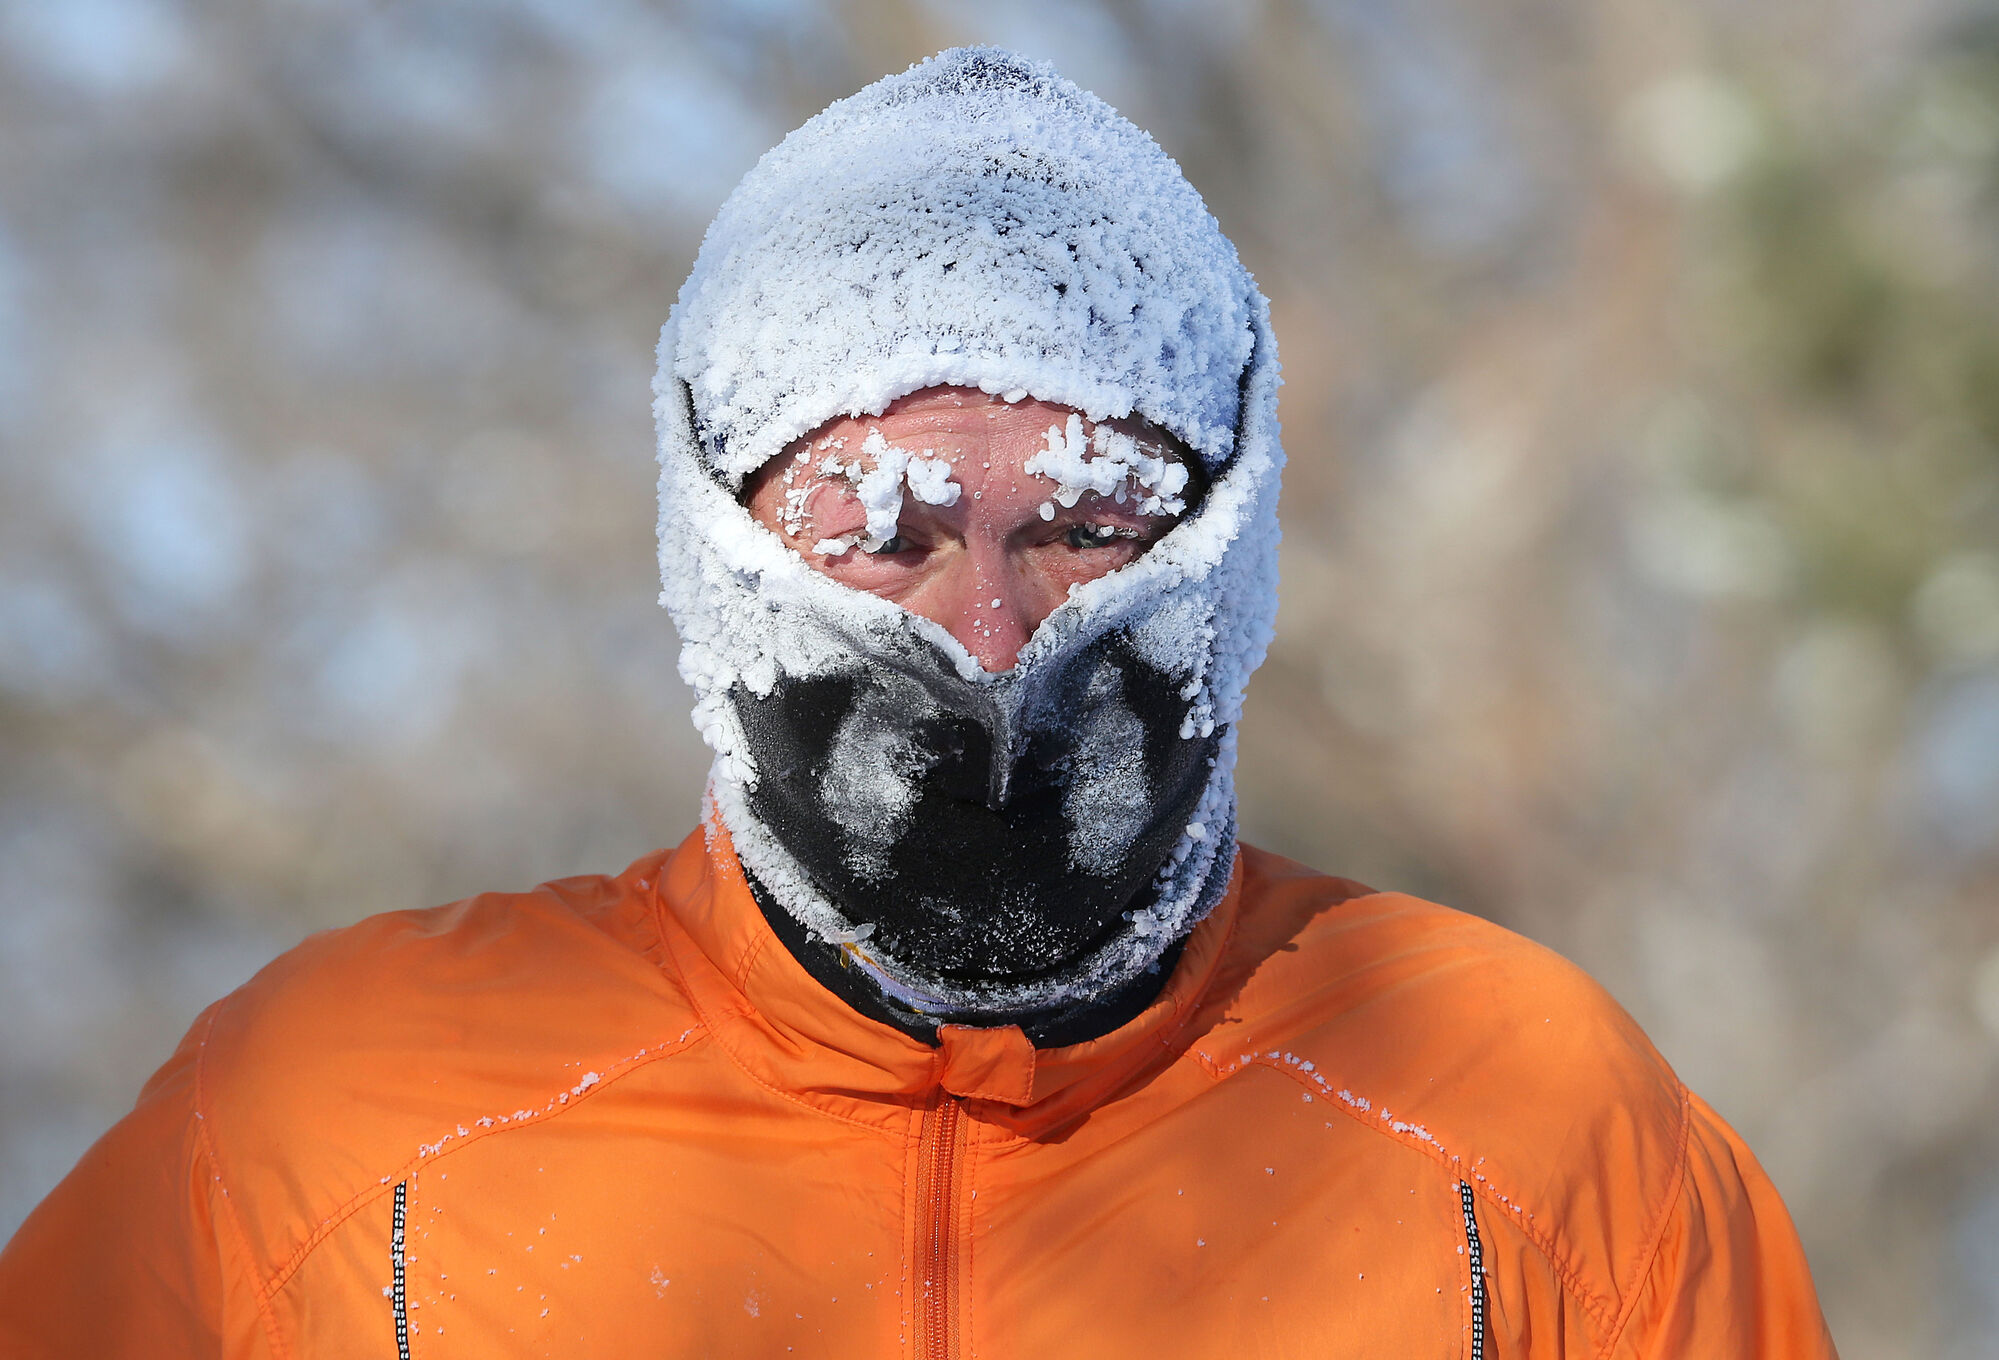 Manitobans broke a record for energy consumption during the bone-chilling cold in December. Sheldon Reynolds frosts up during his two-hour run at Kildonan Park Sunday.